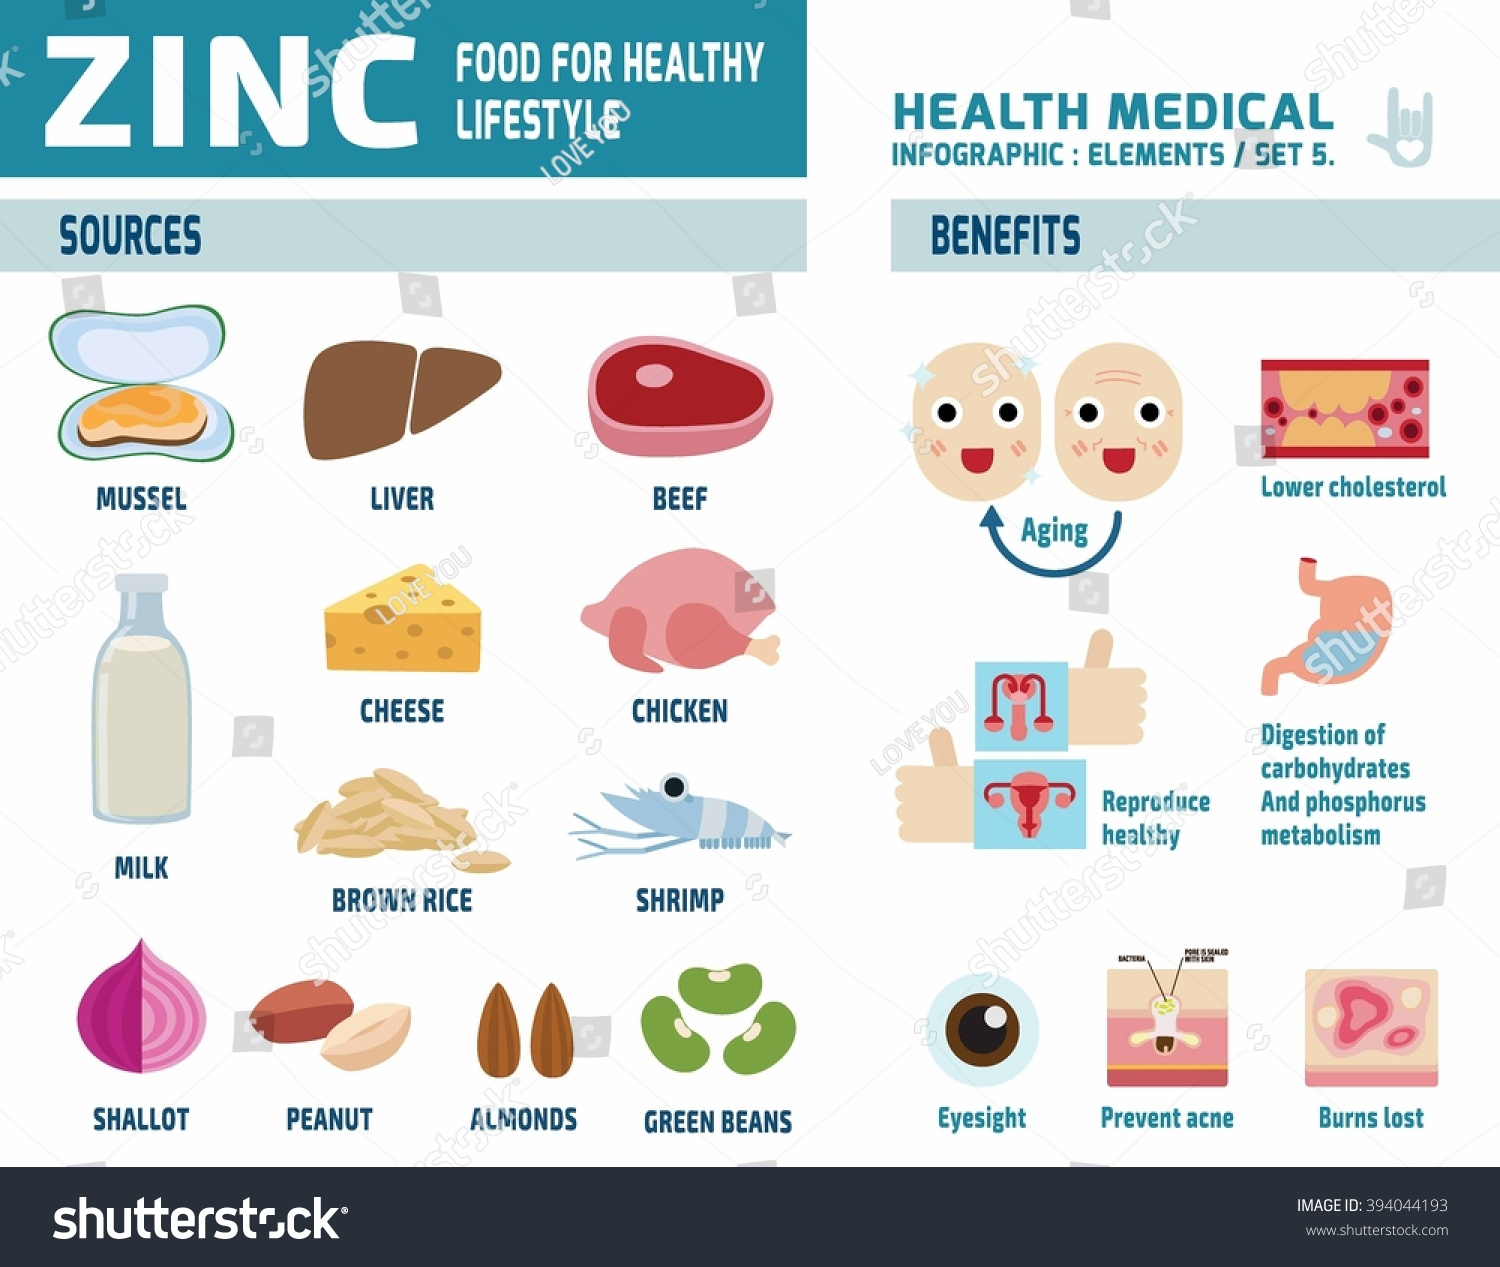 Zinc Infographic Elements Health Care Concept 394044193